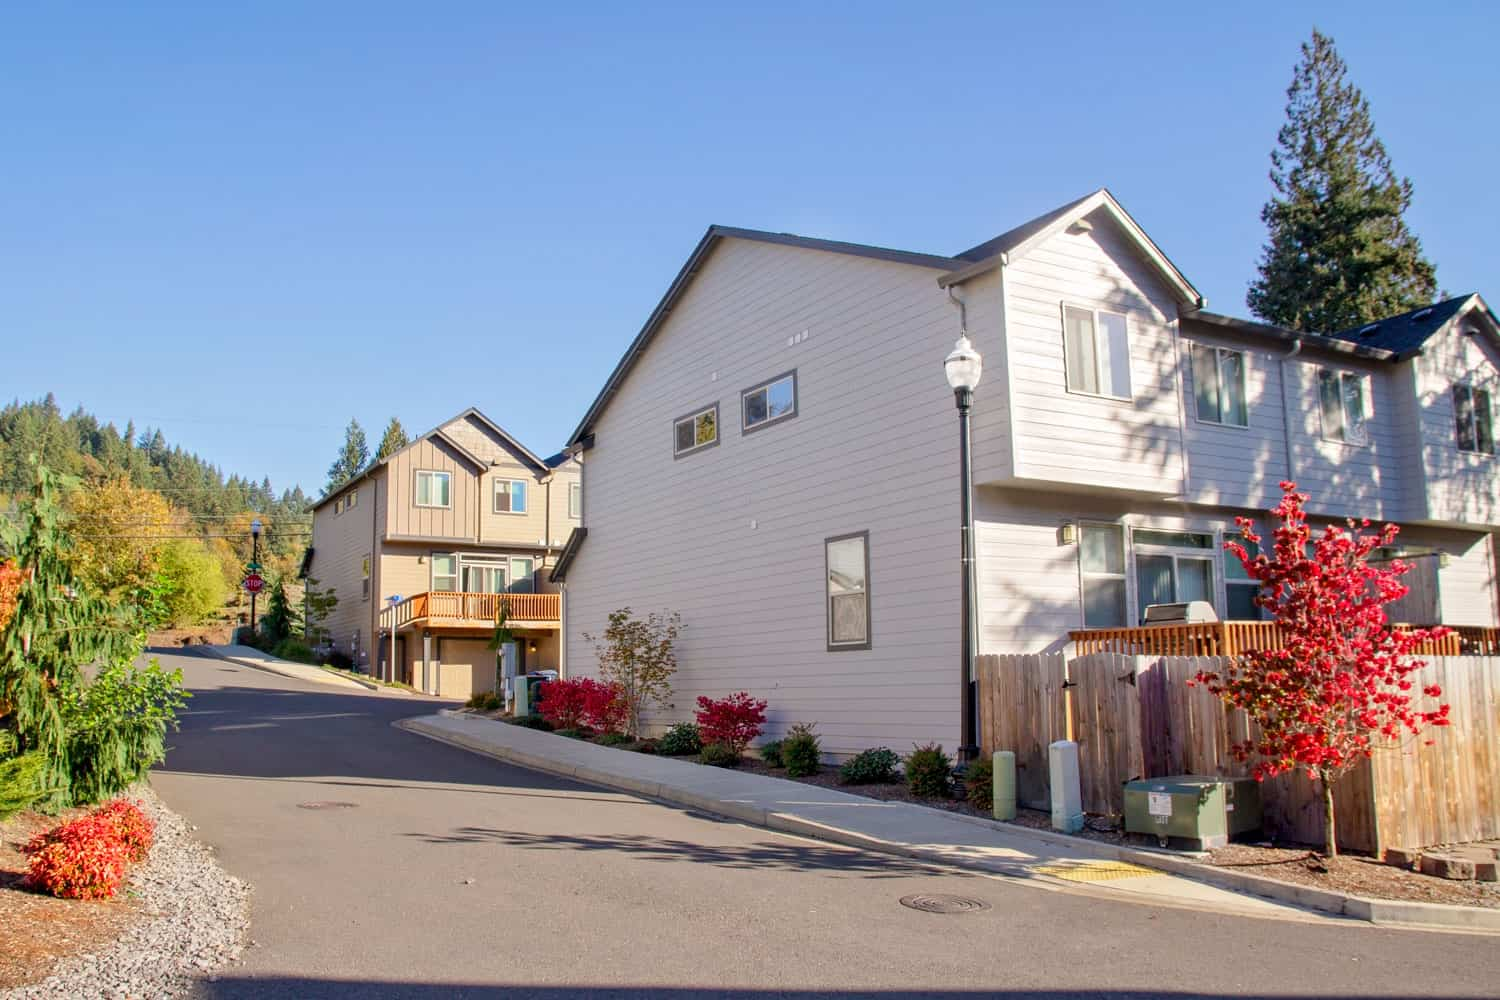 7th Avenue Townhomes (13)